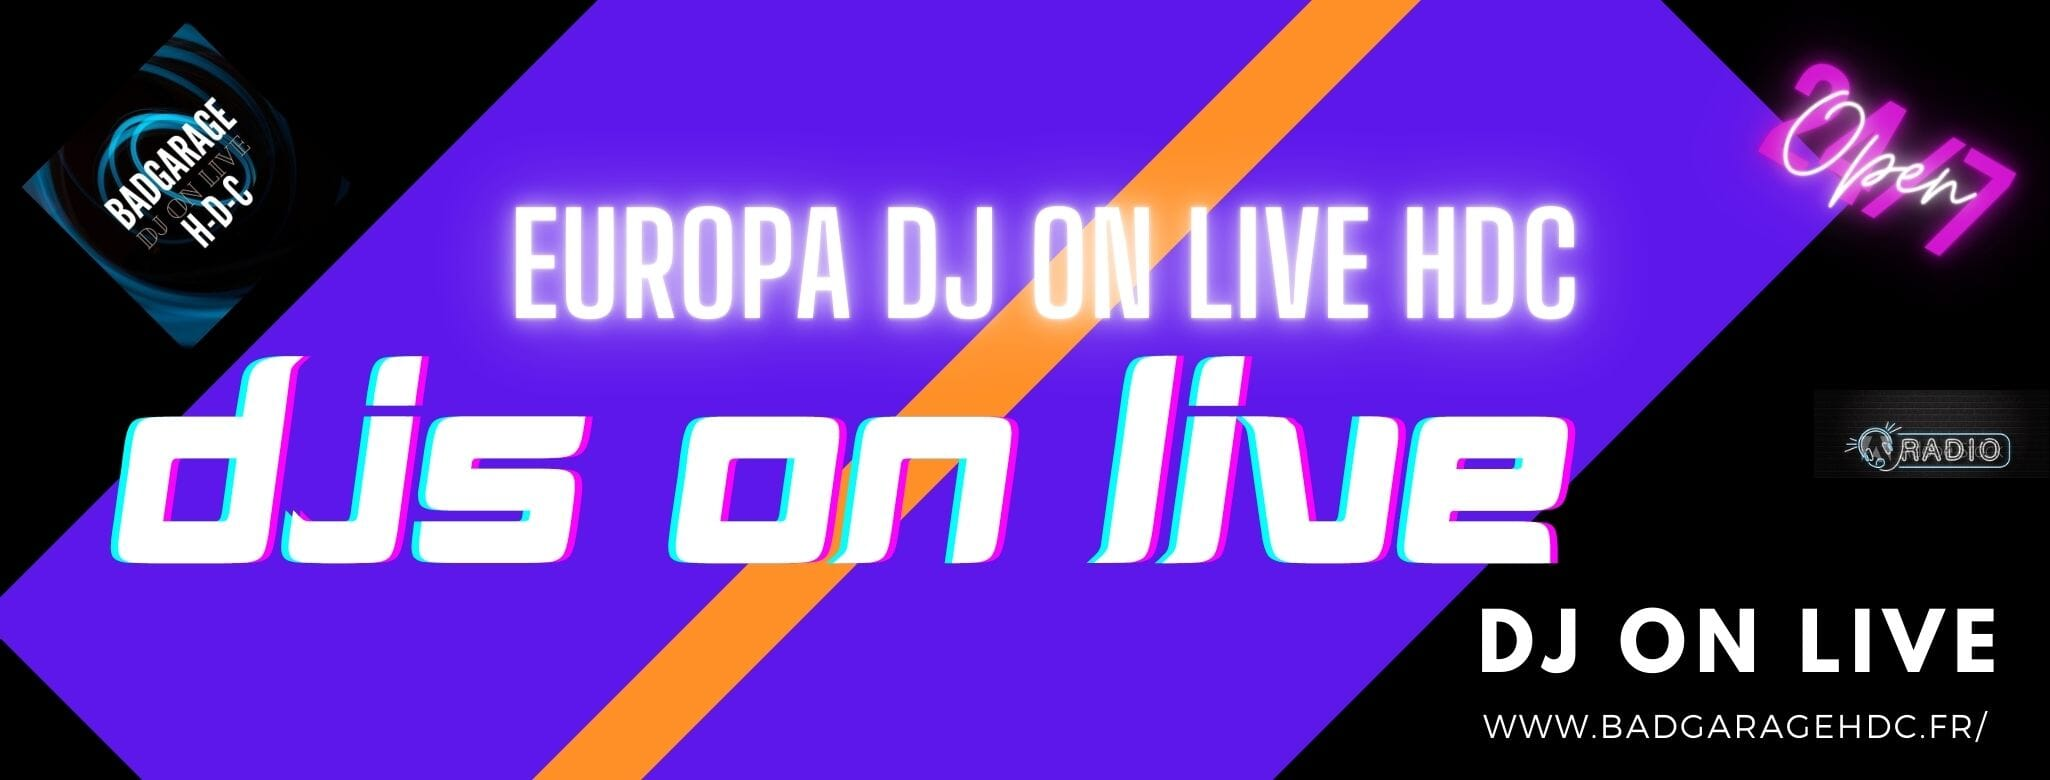 Ecouter Europa Dj On Live H-d-c